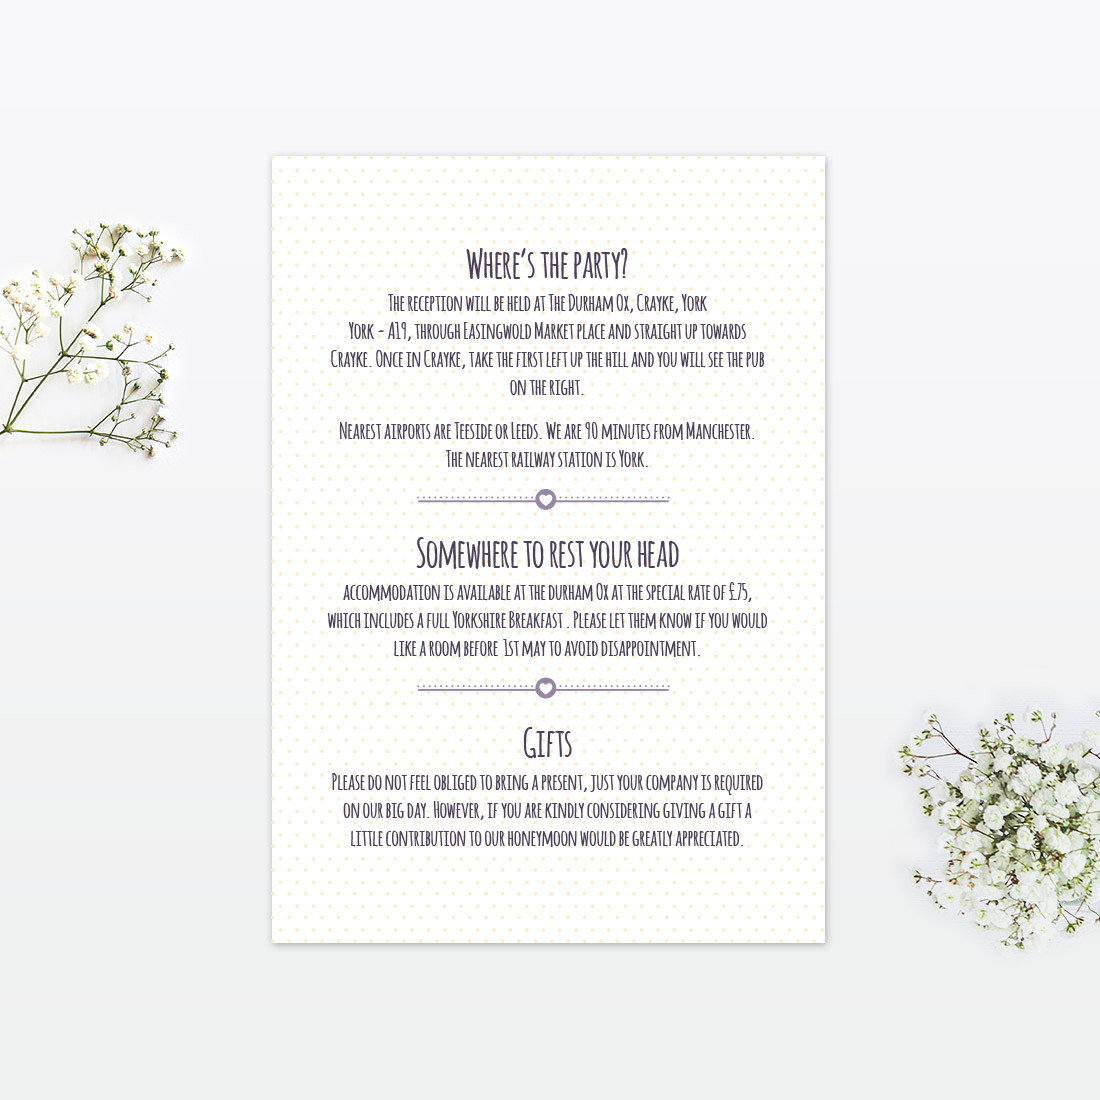 Information To Include On Wedding Invitation: Country Bunting Additional Information